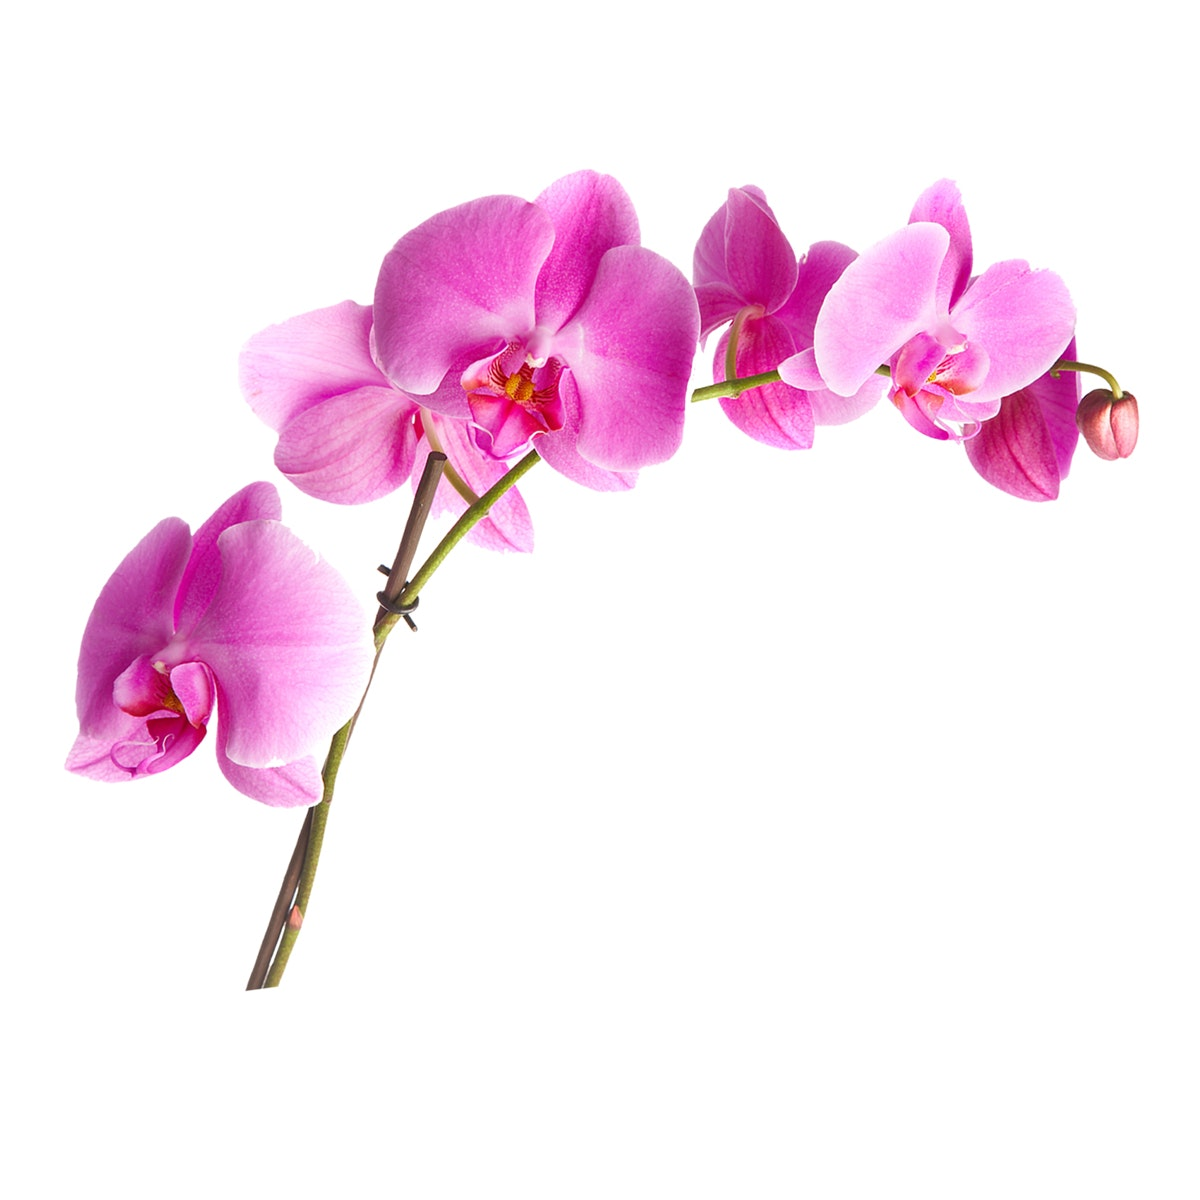 Painterous Wall Decal Magnifique Orchid 1901 120X120